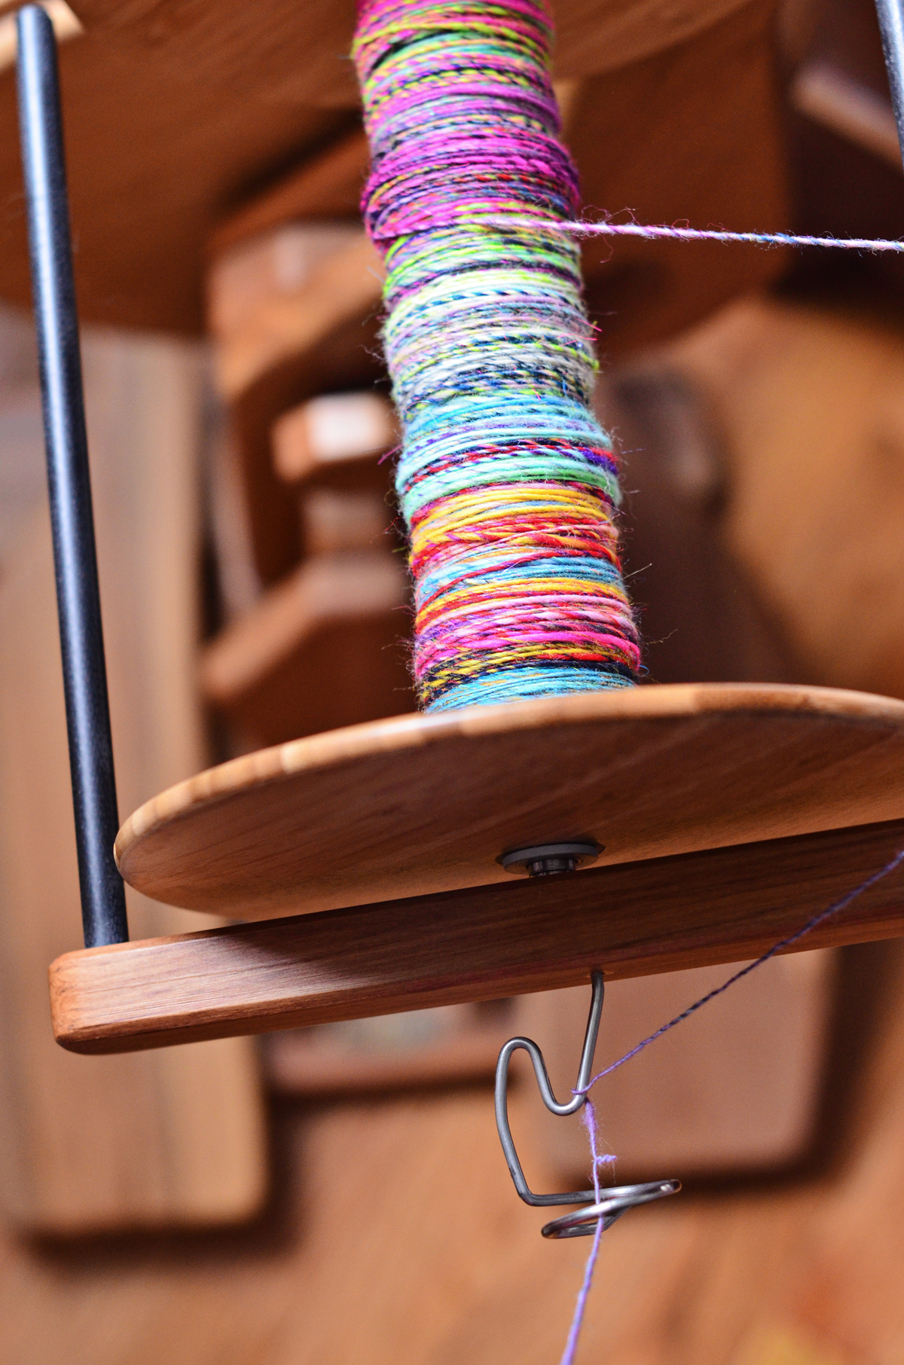 Majacraft Aura Spinning Wheel with the Overdrive Head